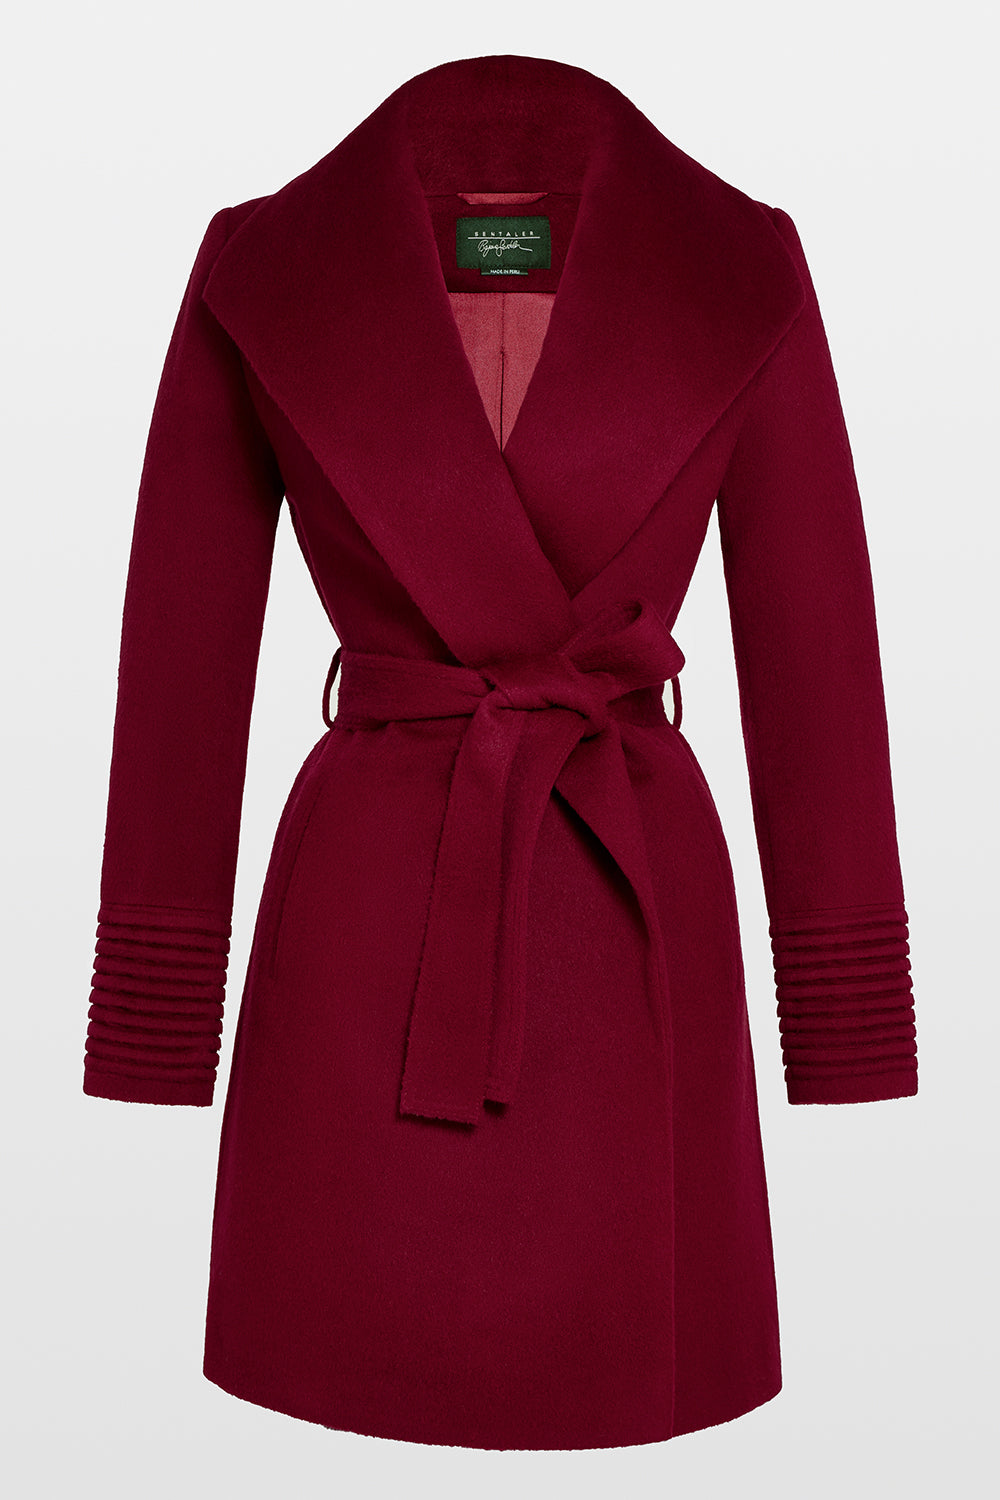 Sentaler Mid Length Shawl Collar Wrap Coat featured in Baby Alpaca and available in Garnet Red. Seen off figure.